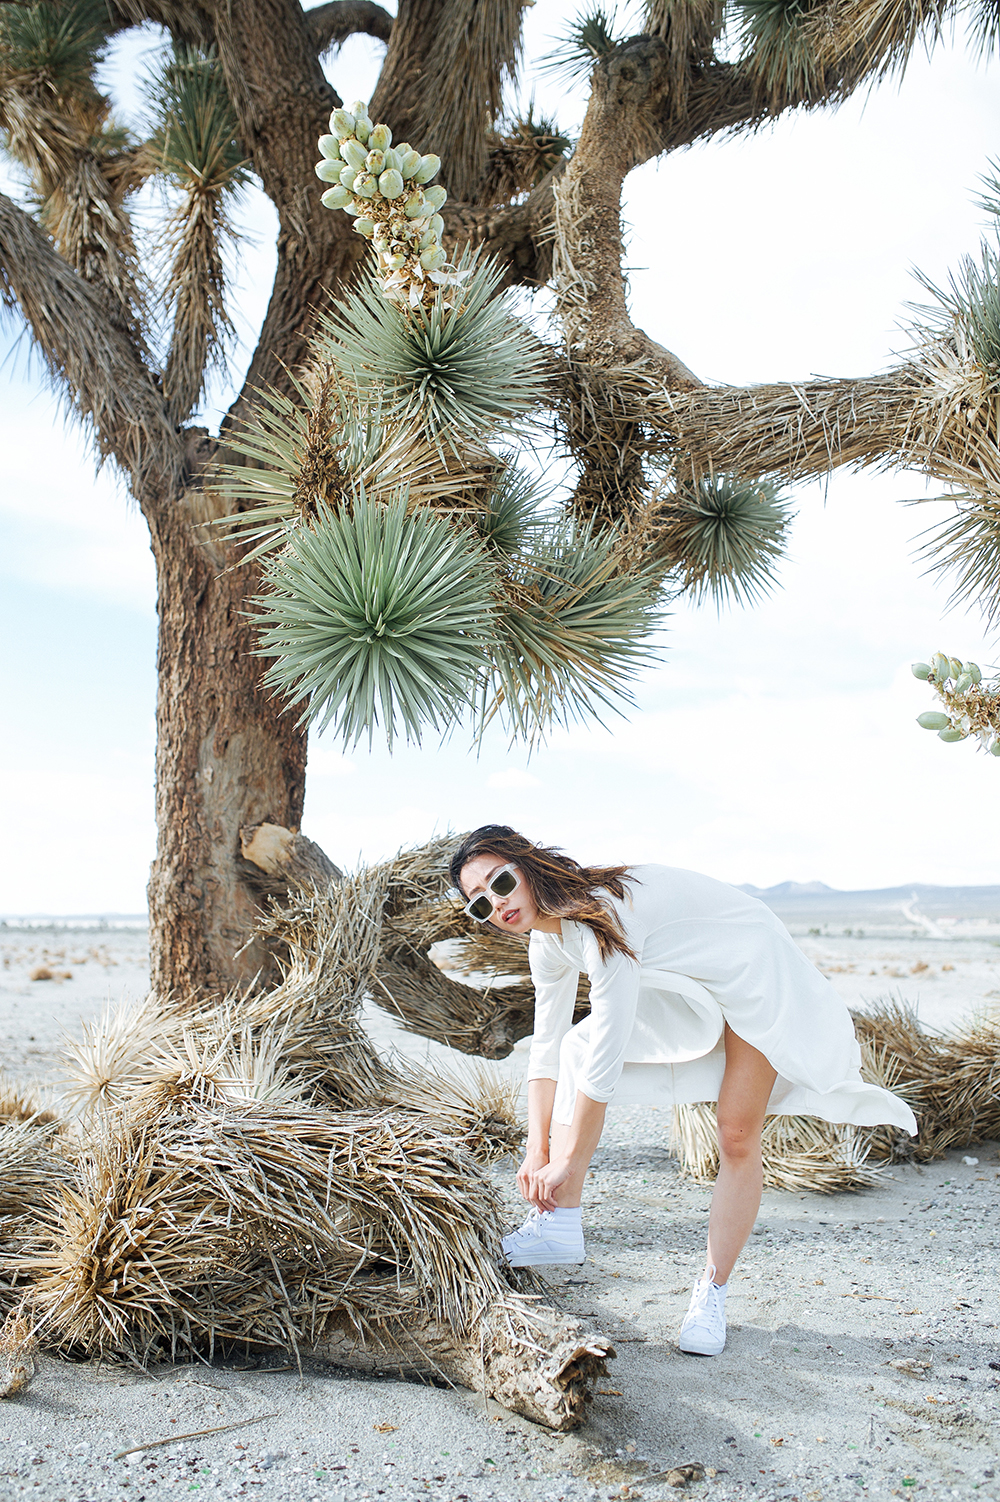 Neon Blush, BlueFly festival style, Whyred wrap dress, Céline white sunglasses, VANS hi top white sneakers, Joshua Tree